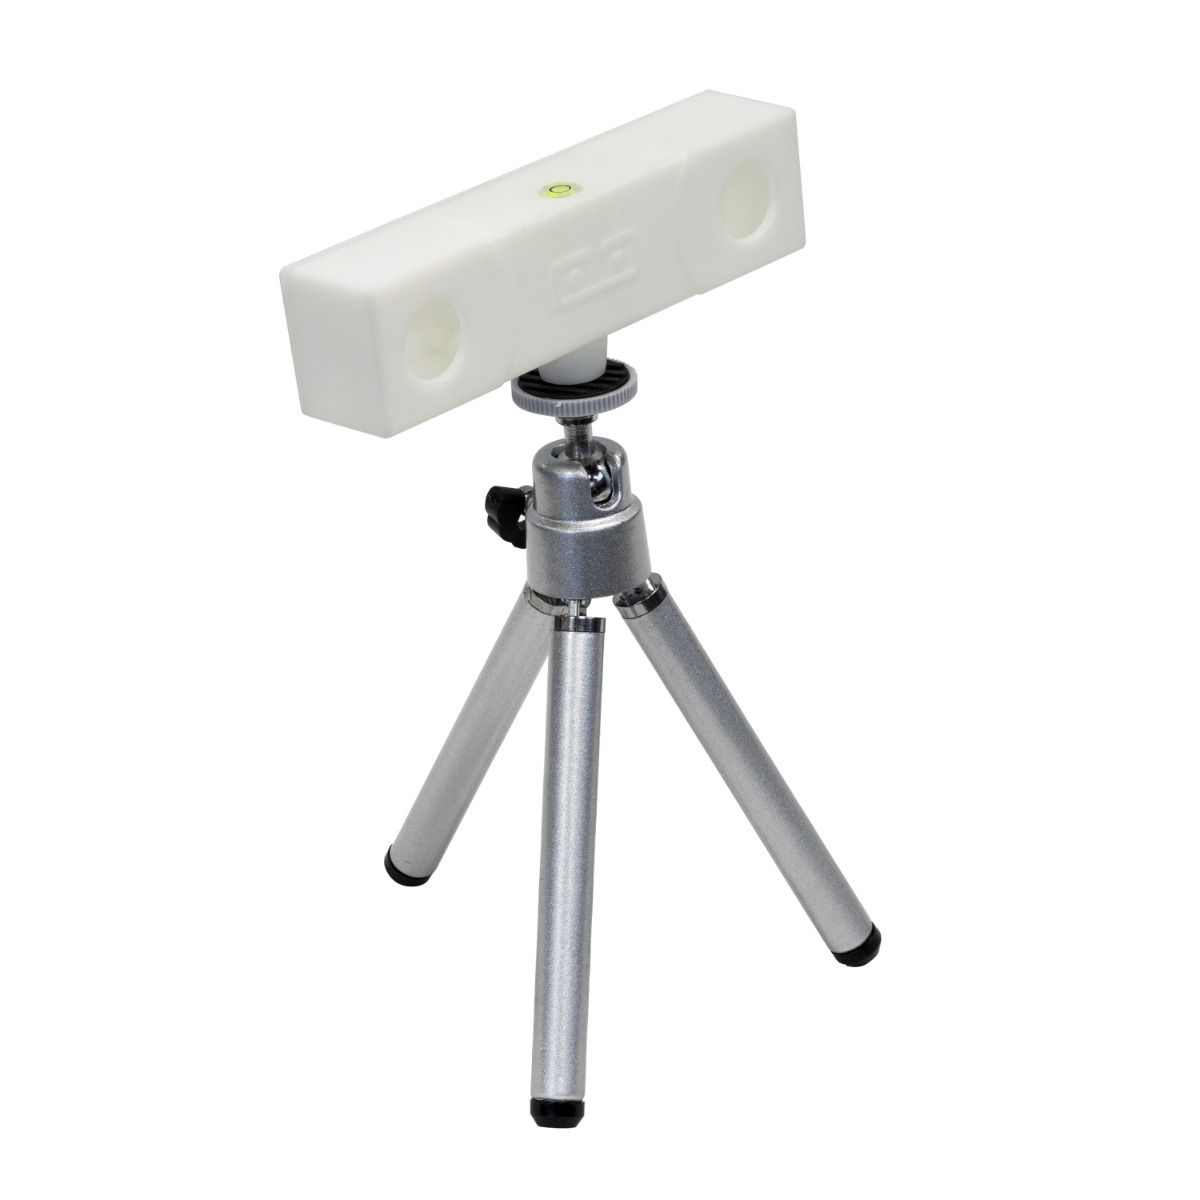 Arducam Case and Tripod Bundle for Stereo Camera Module B0263, B0264